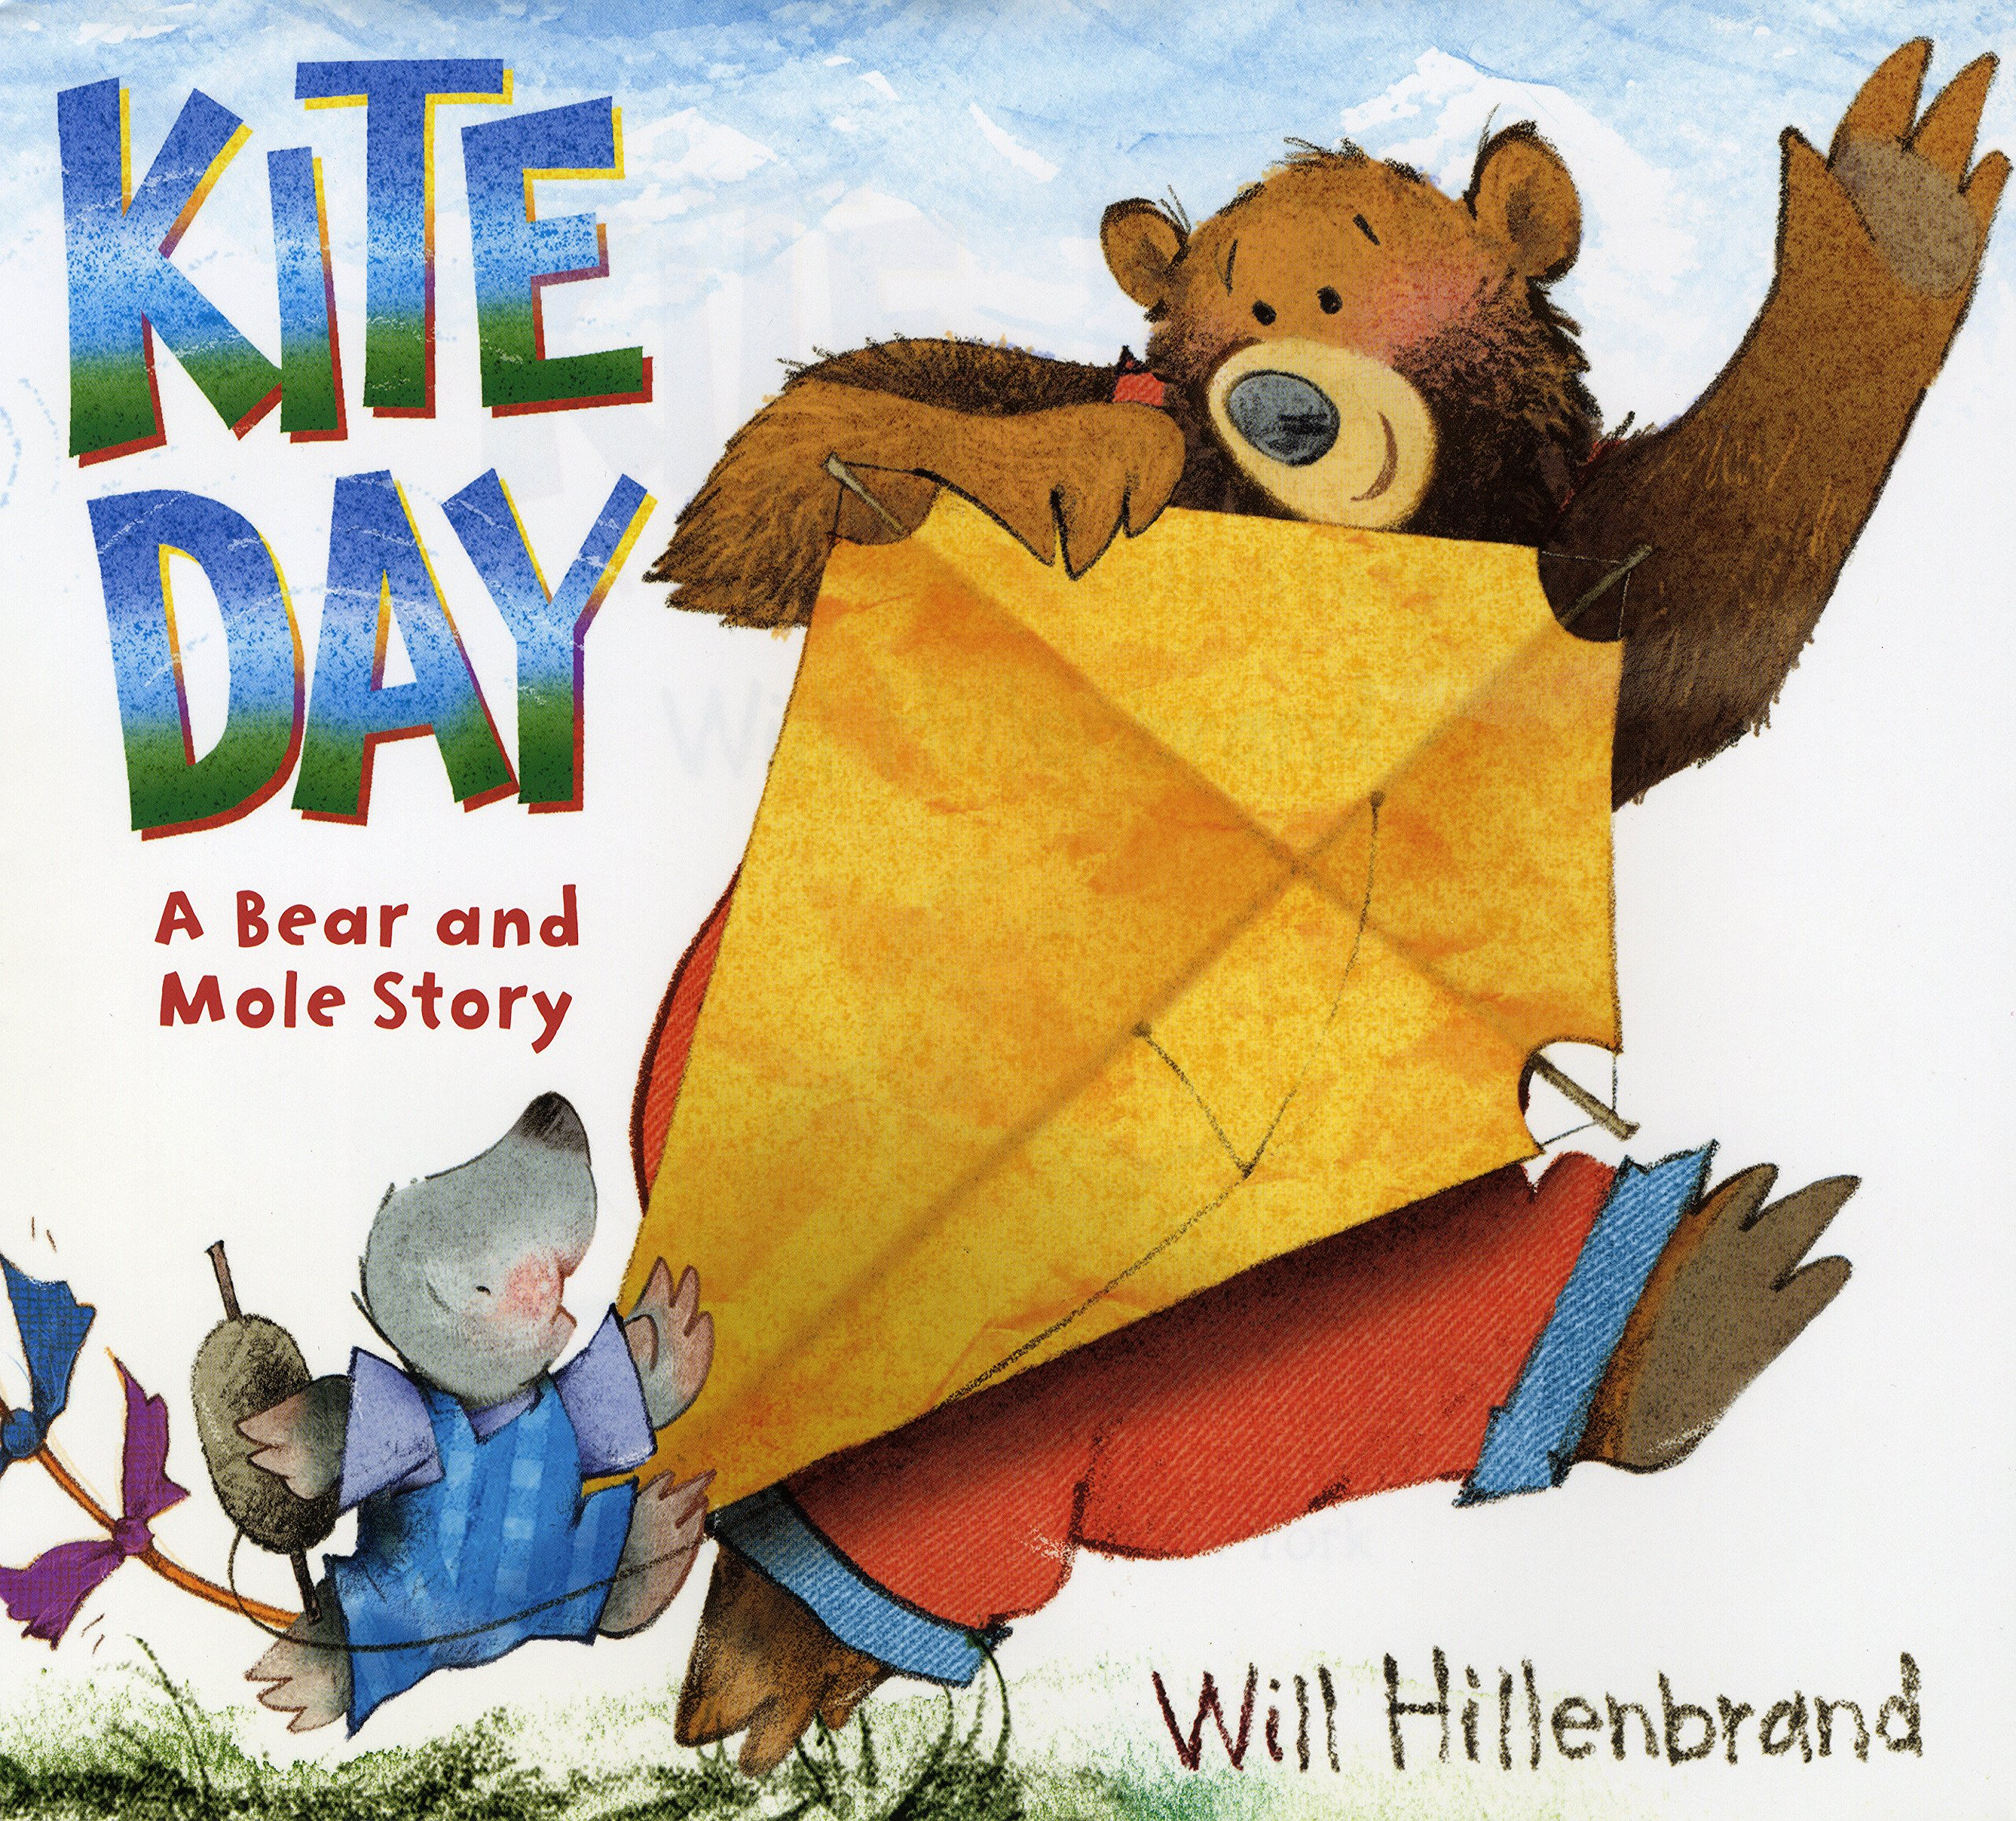 Kite Day  A Bear and Mole Story  Will Hillenbrand  9780823427581   Amazon.com  Books c97b5b20bd